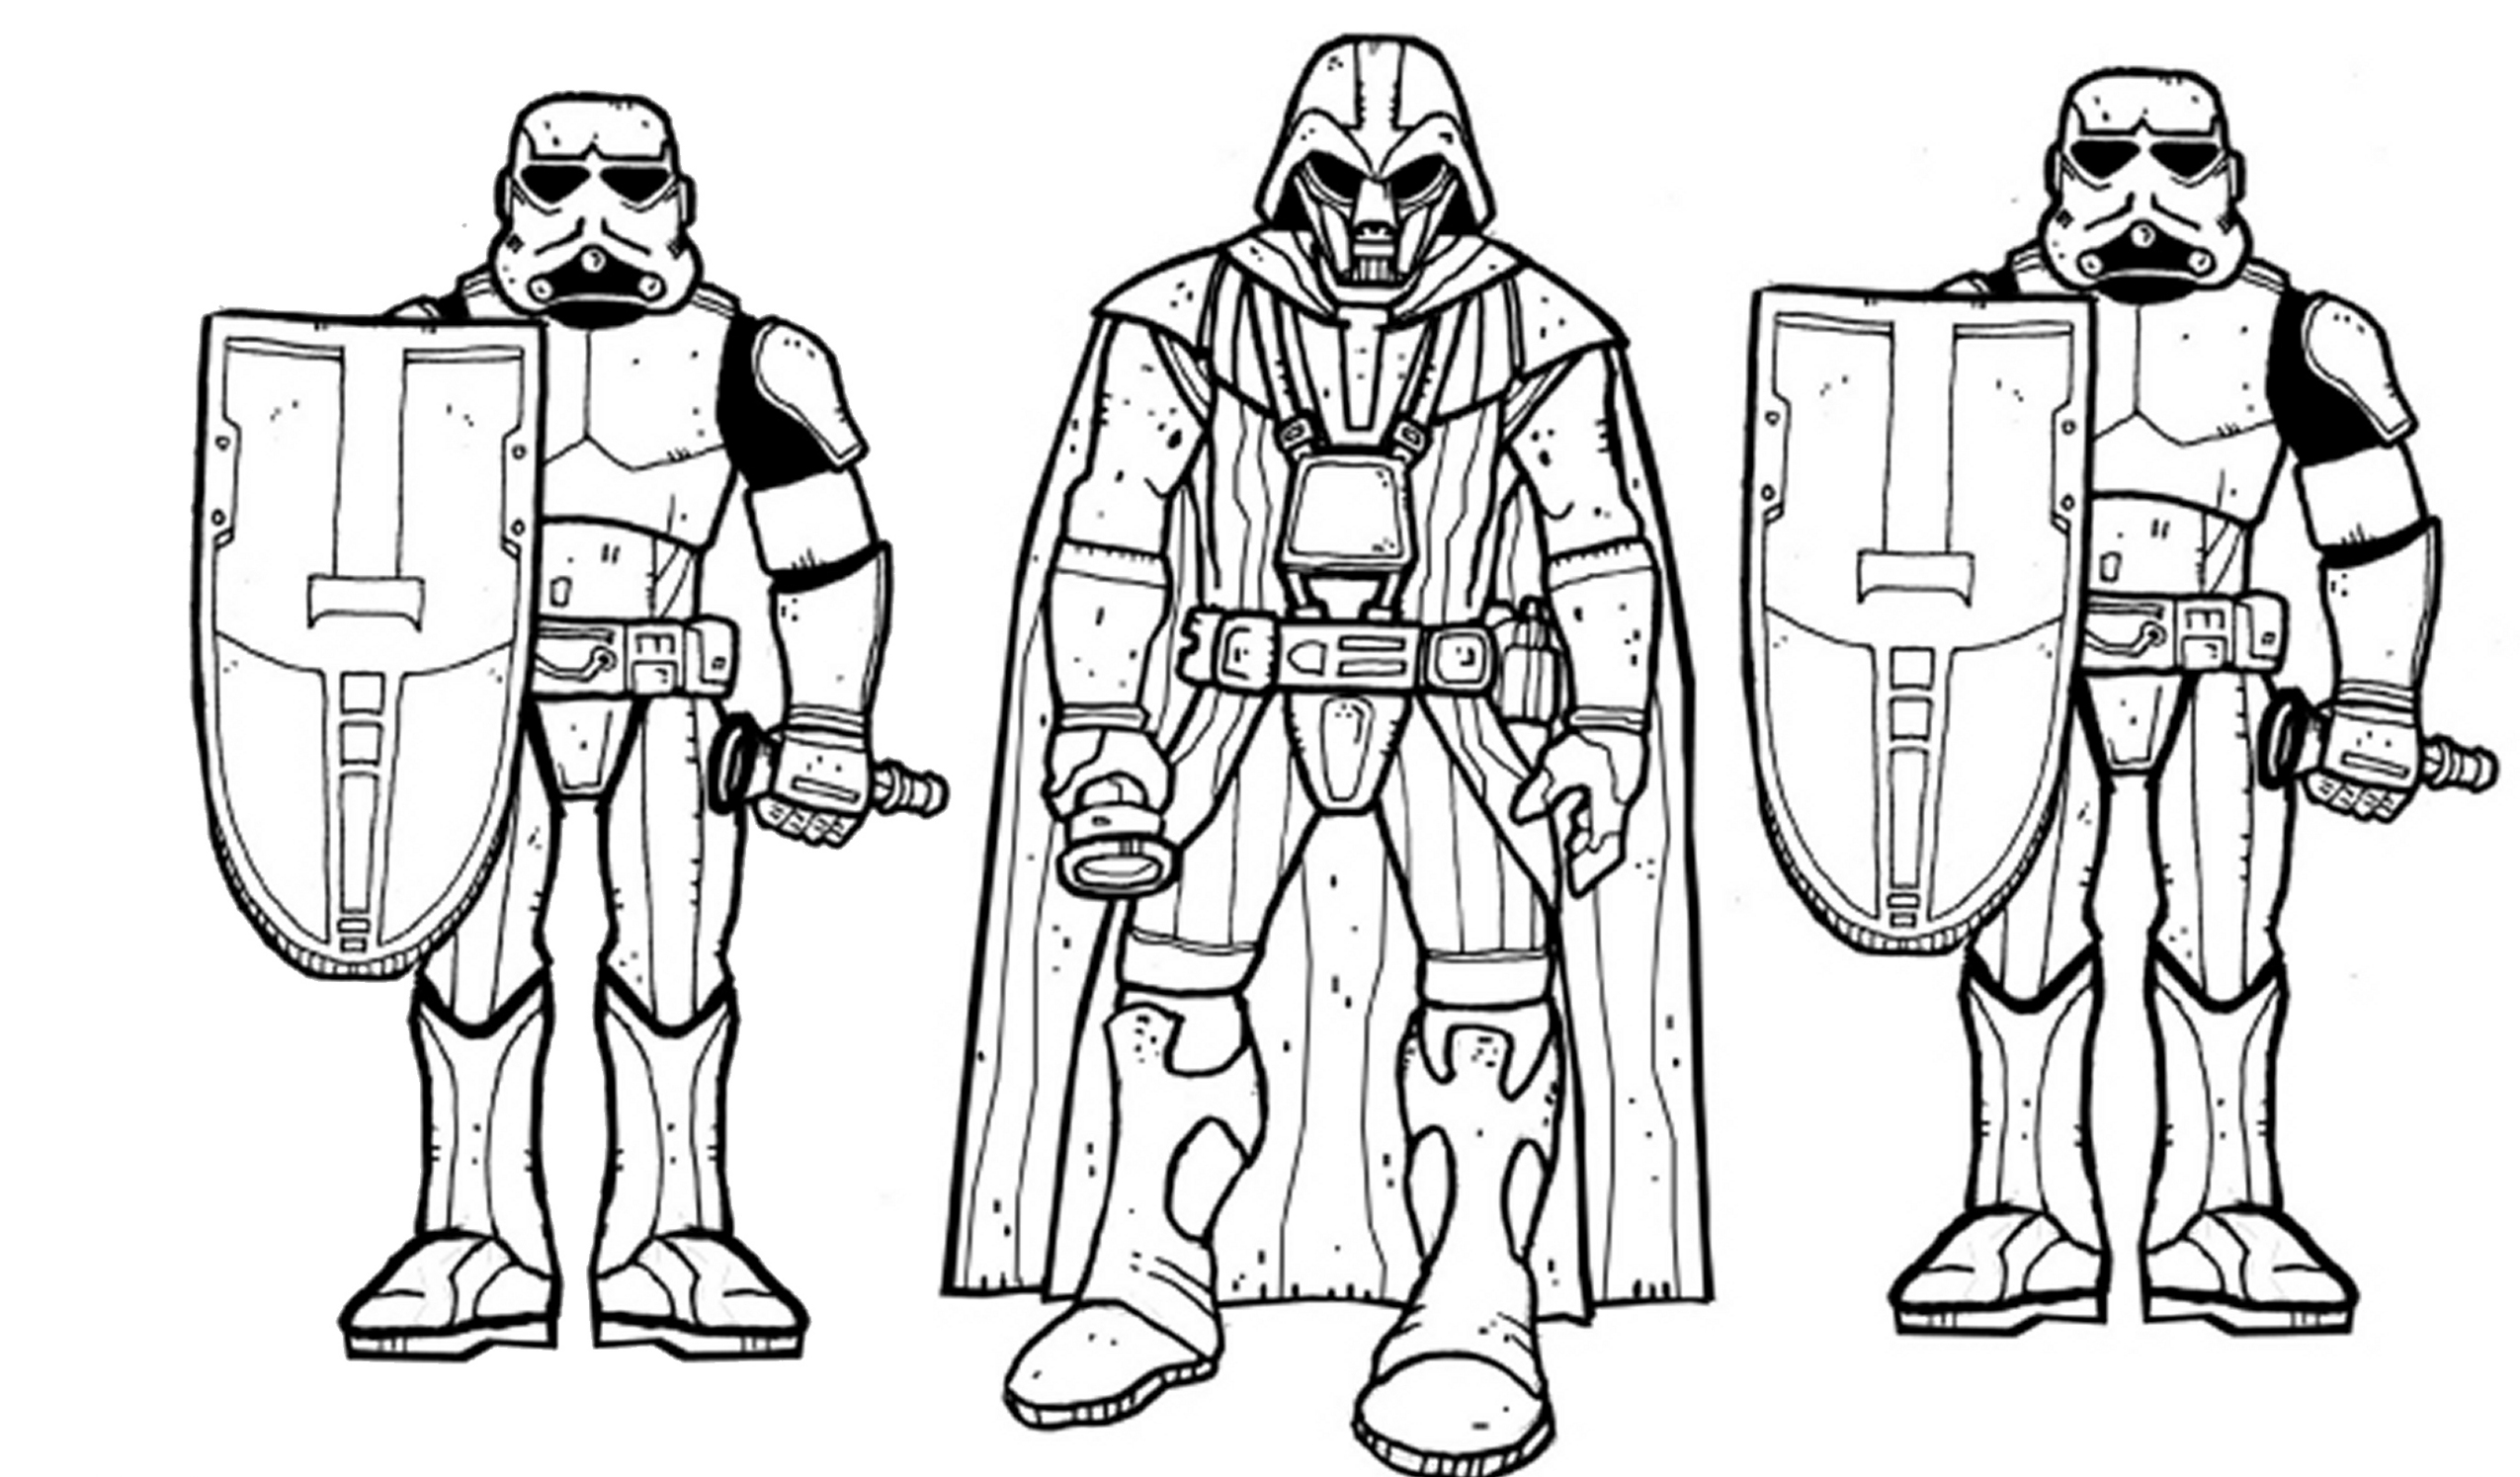 2550x1495 Nascar Coloring Pages Lego Star Wars Pleasing Darth Vader